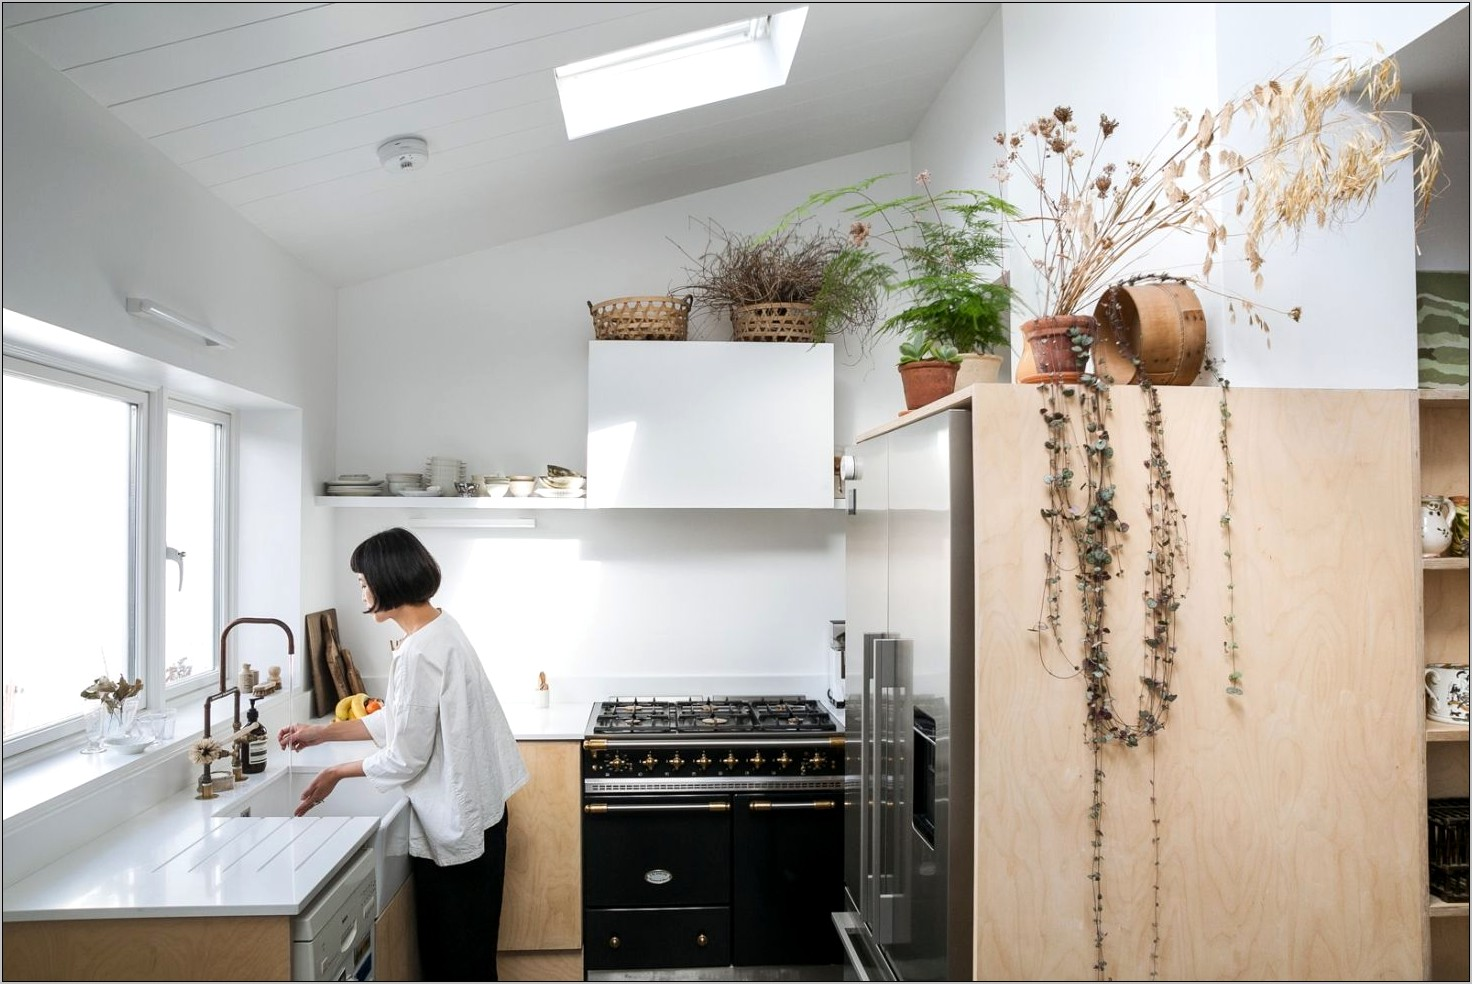 Kitchen Countertops Decor With Dried Flower